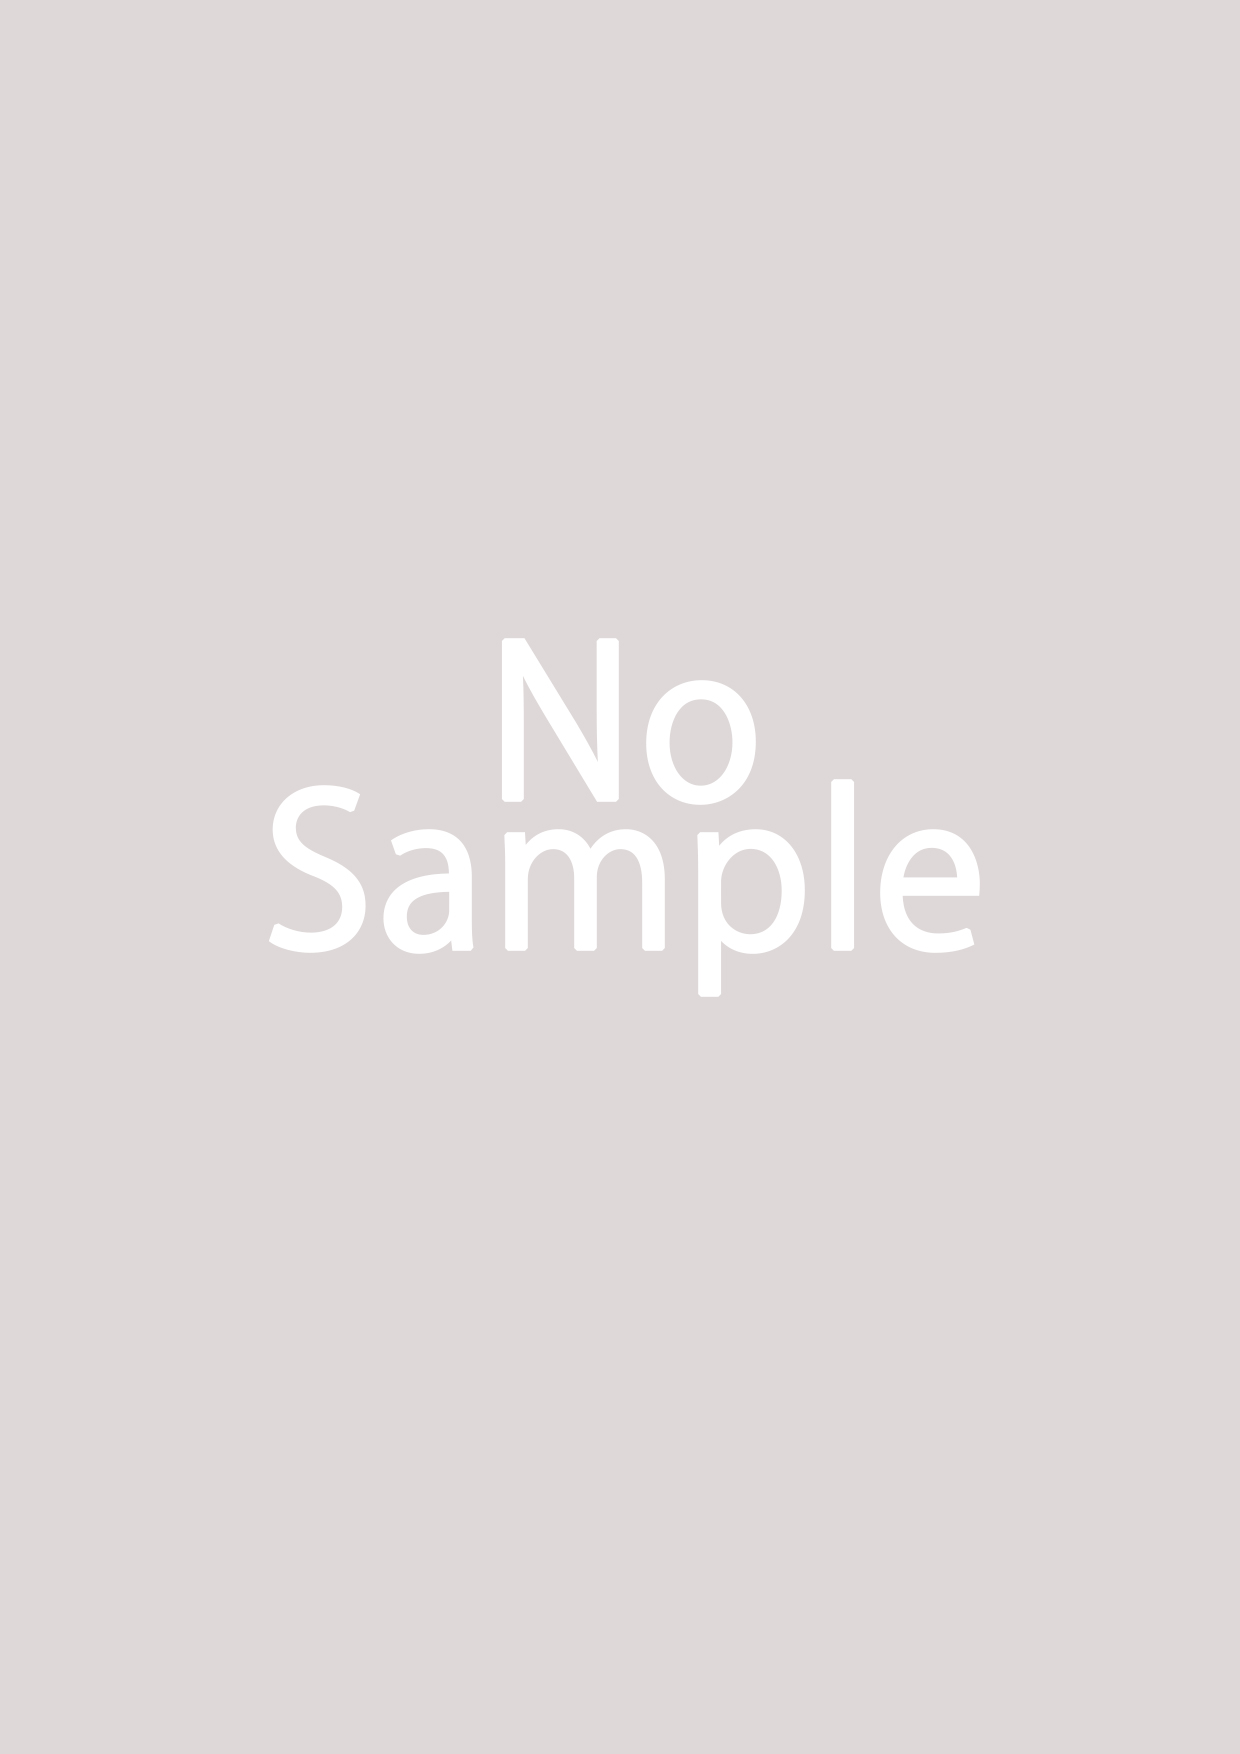 nosample